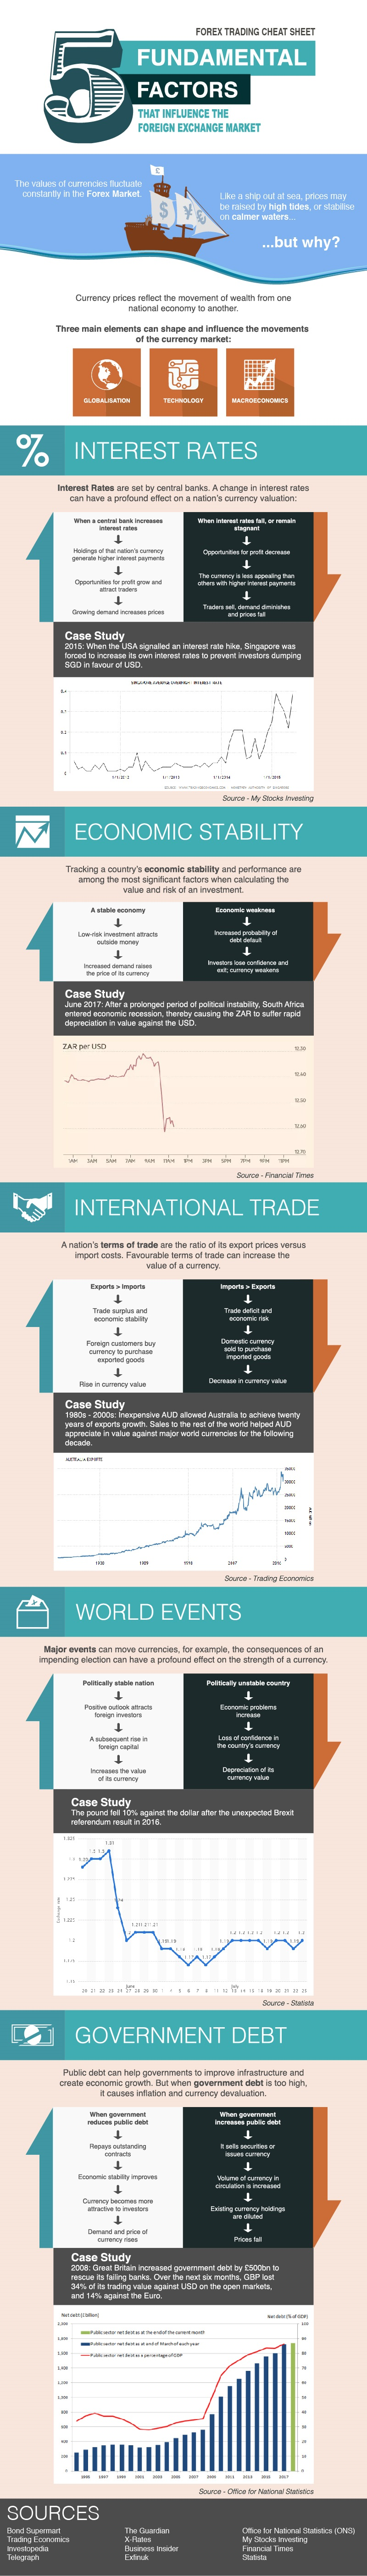 Foreign Currency Exchange and Forex Trading, explained